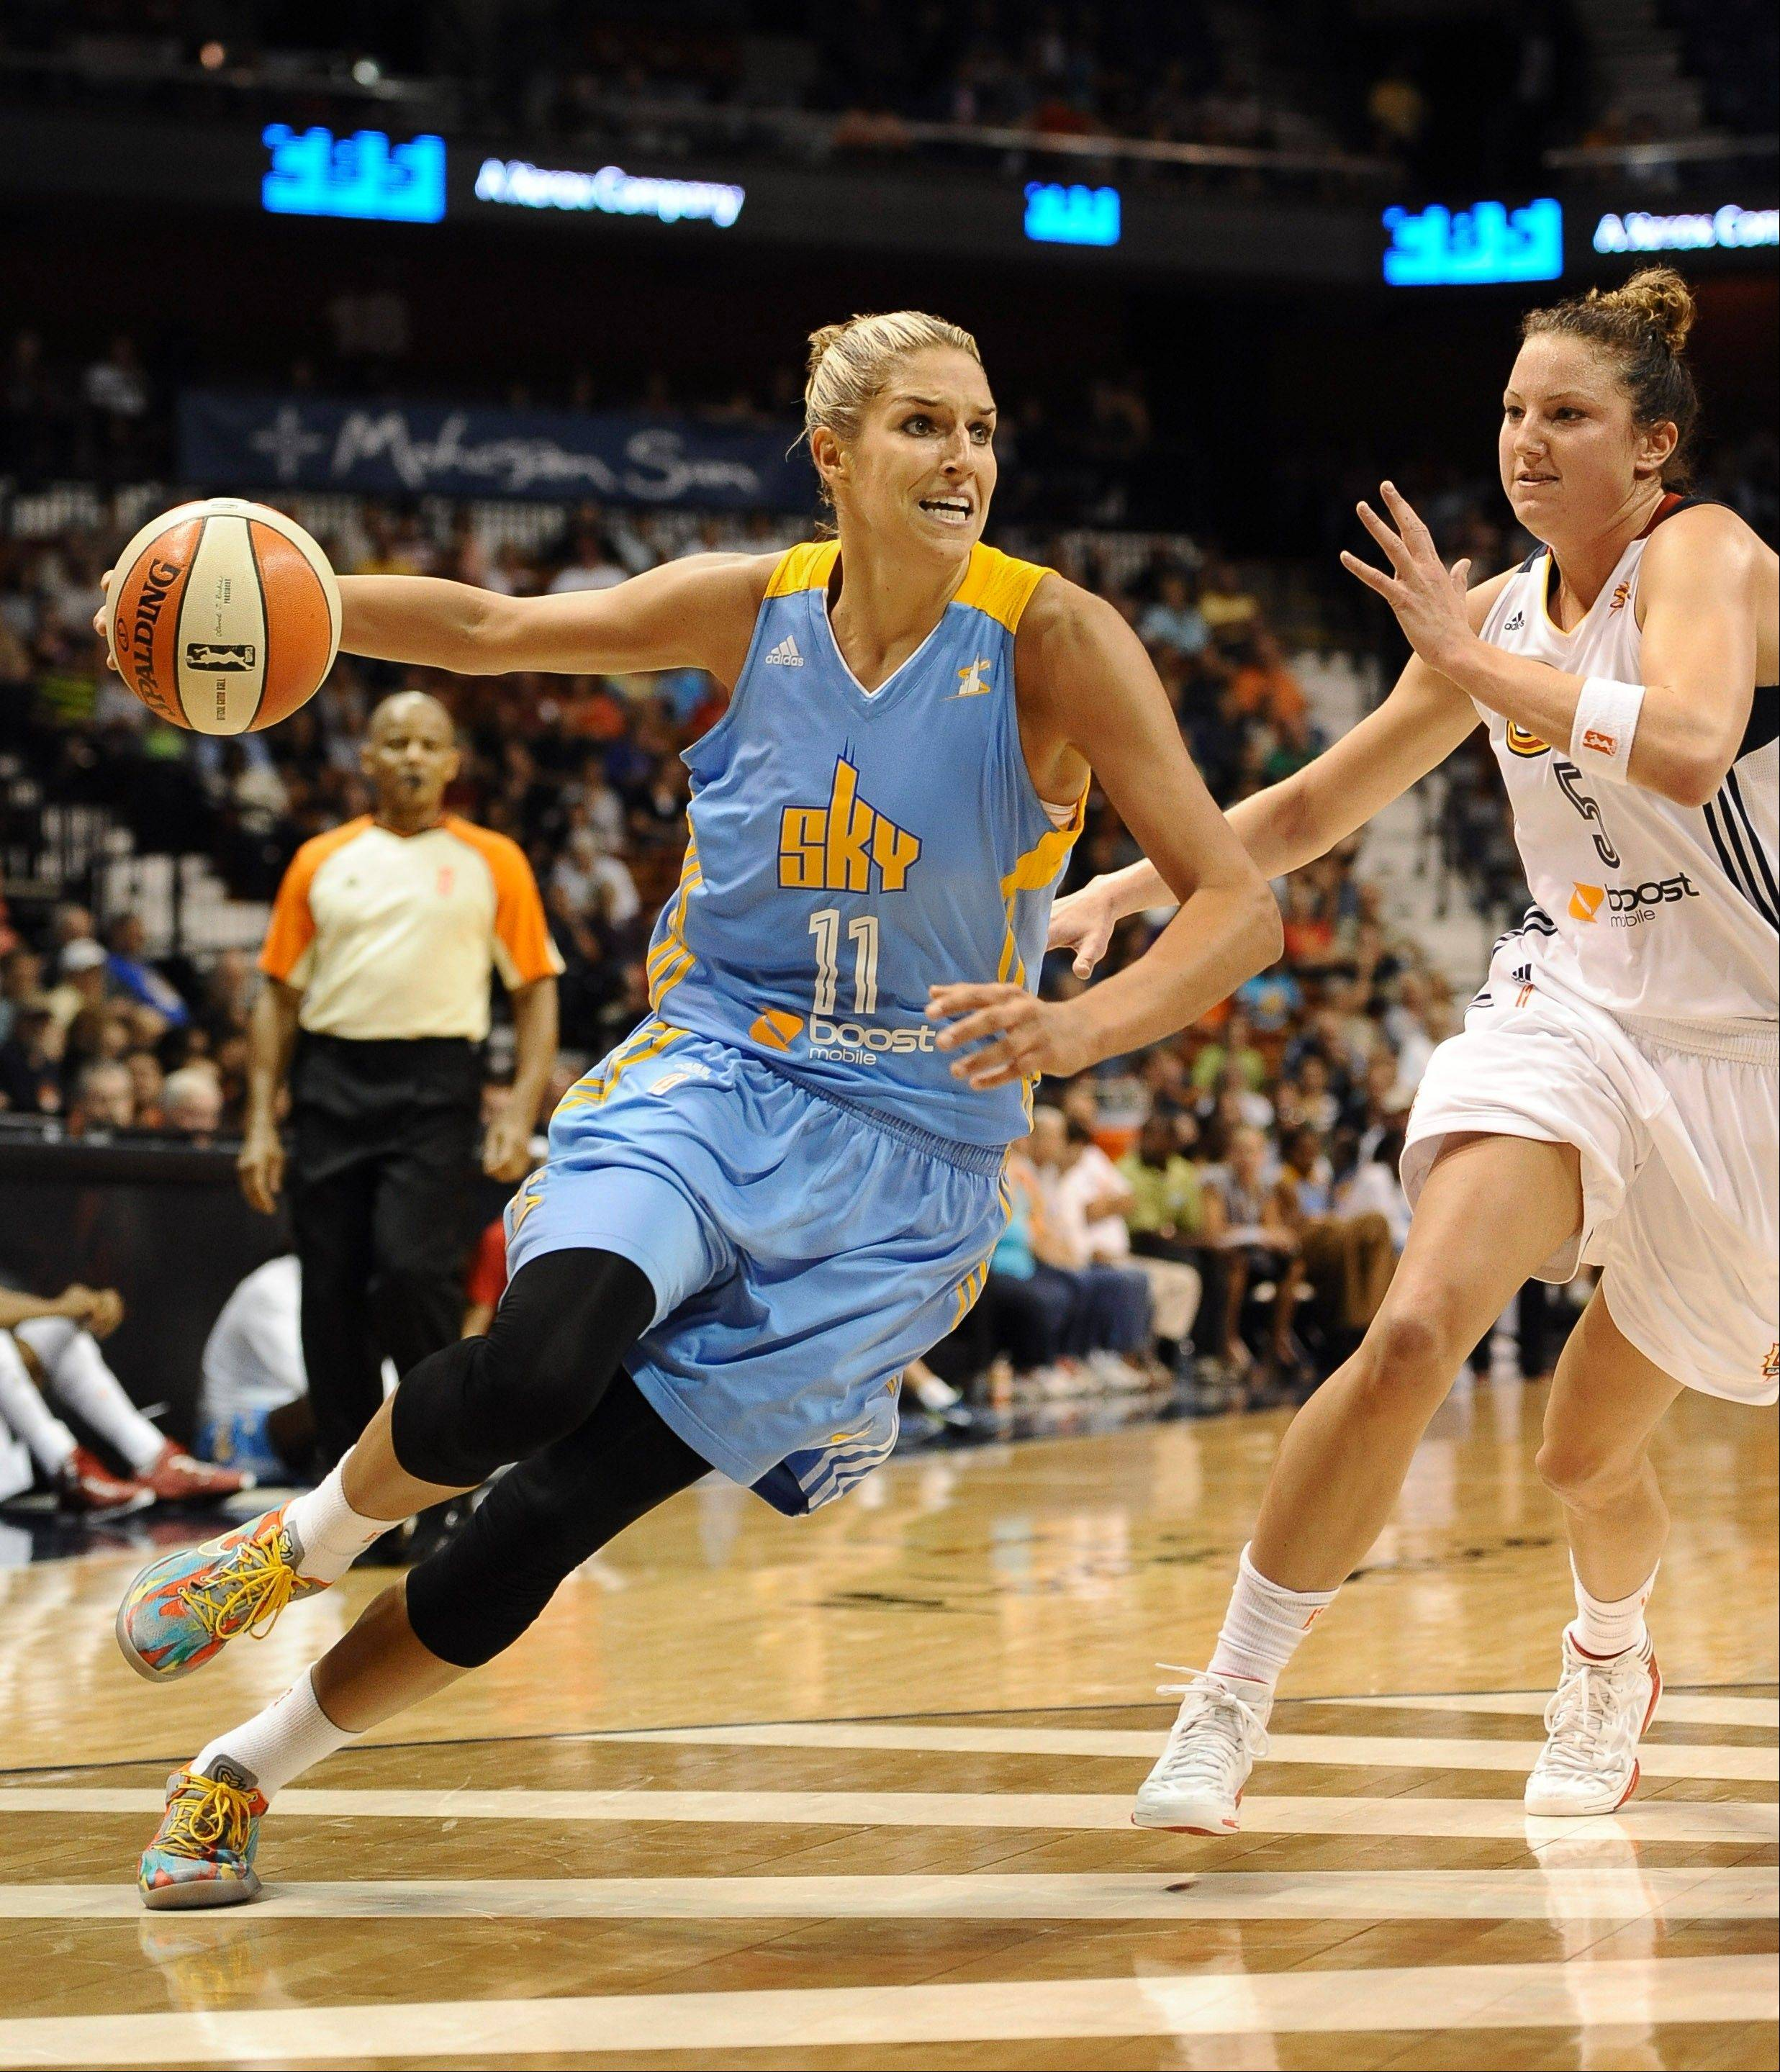 Associated Press Chicago Sky leading scorer Elena Delle Donne (11) will play Friday against the New York Liberty as the Sky strives to claim its first WNBA playoff berth in team history.